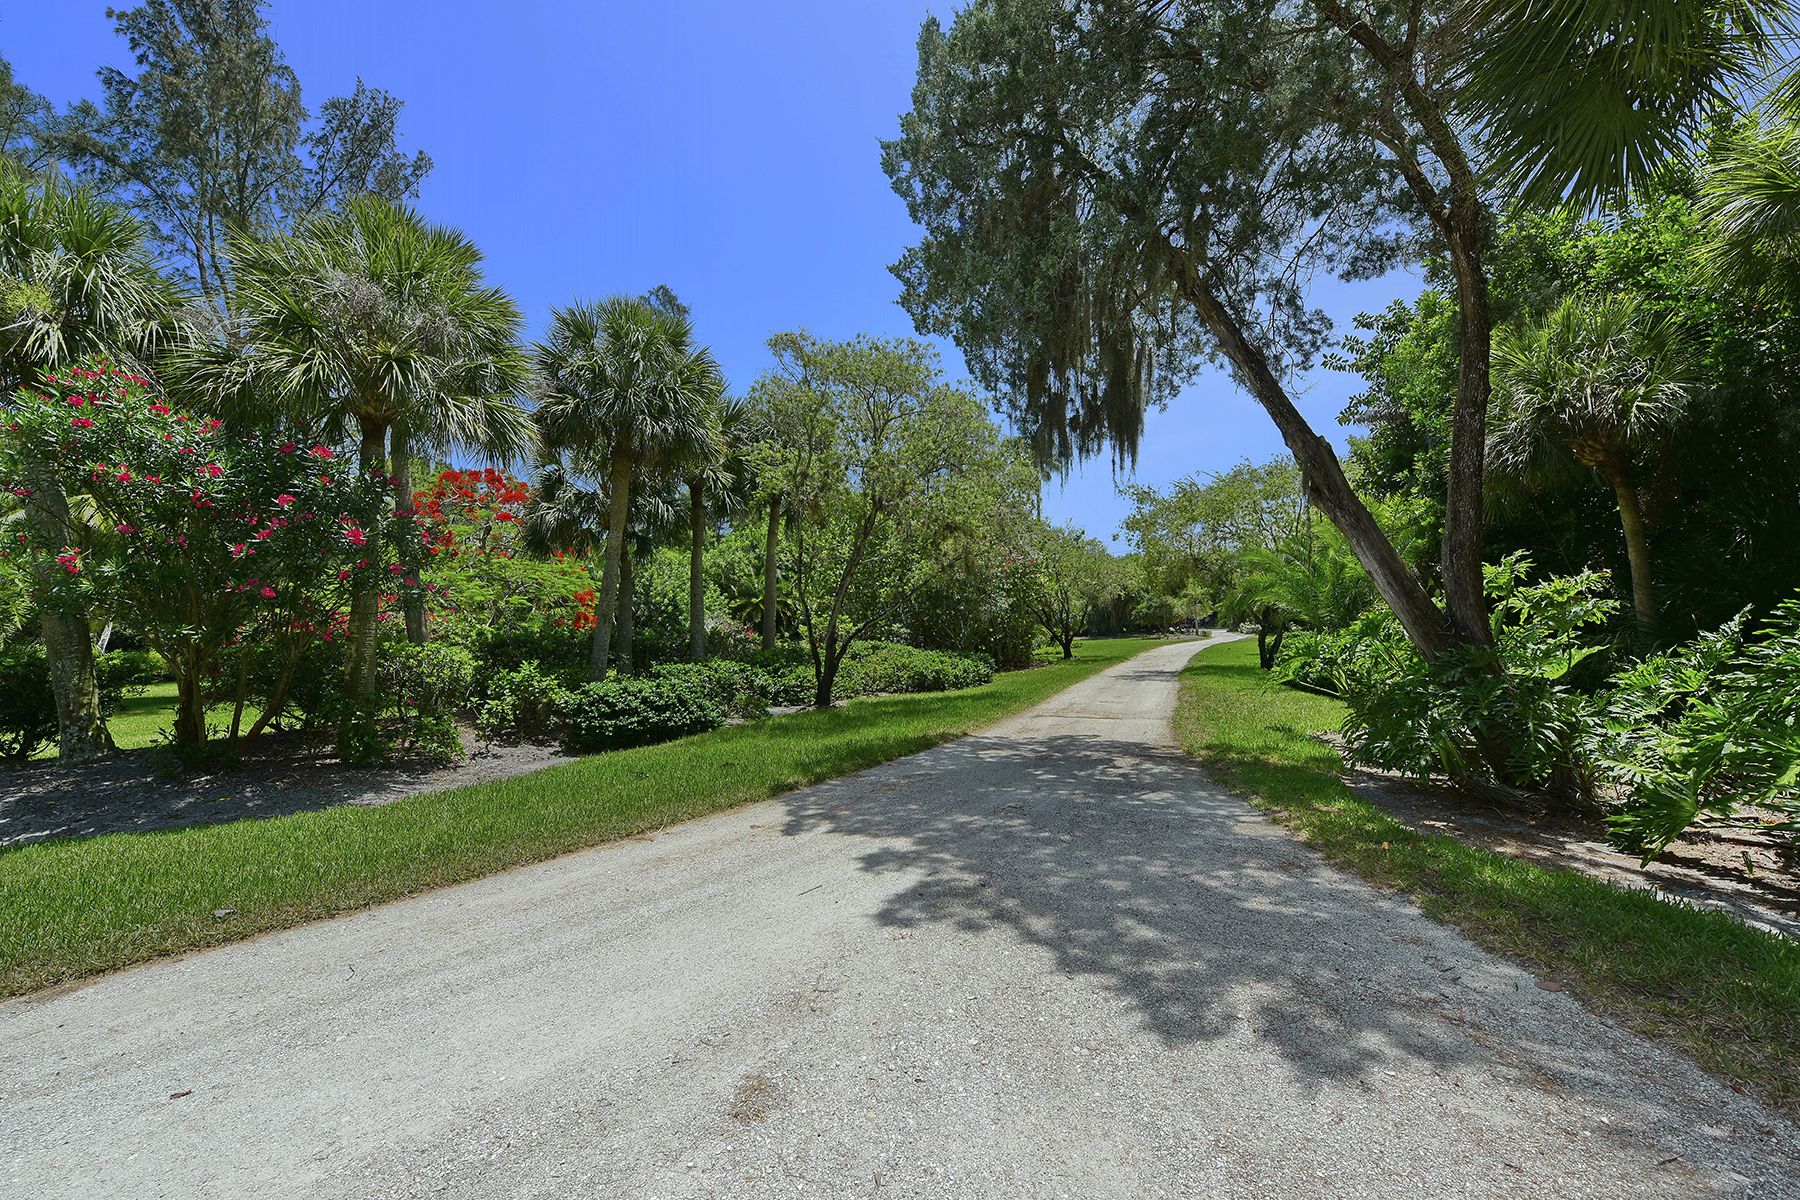 Terreno para Venda às LONGBOAT KEY 4 ACRES 6680 Gulf Of Mexico Dr 3 & 4 Longboat Key, Florida, 34228 Estados Unidos